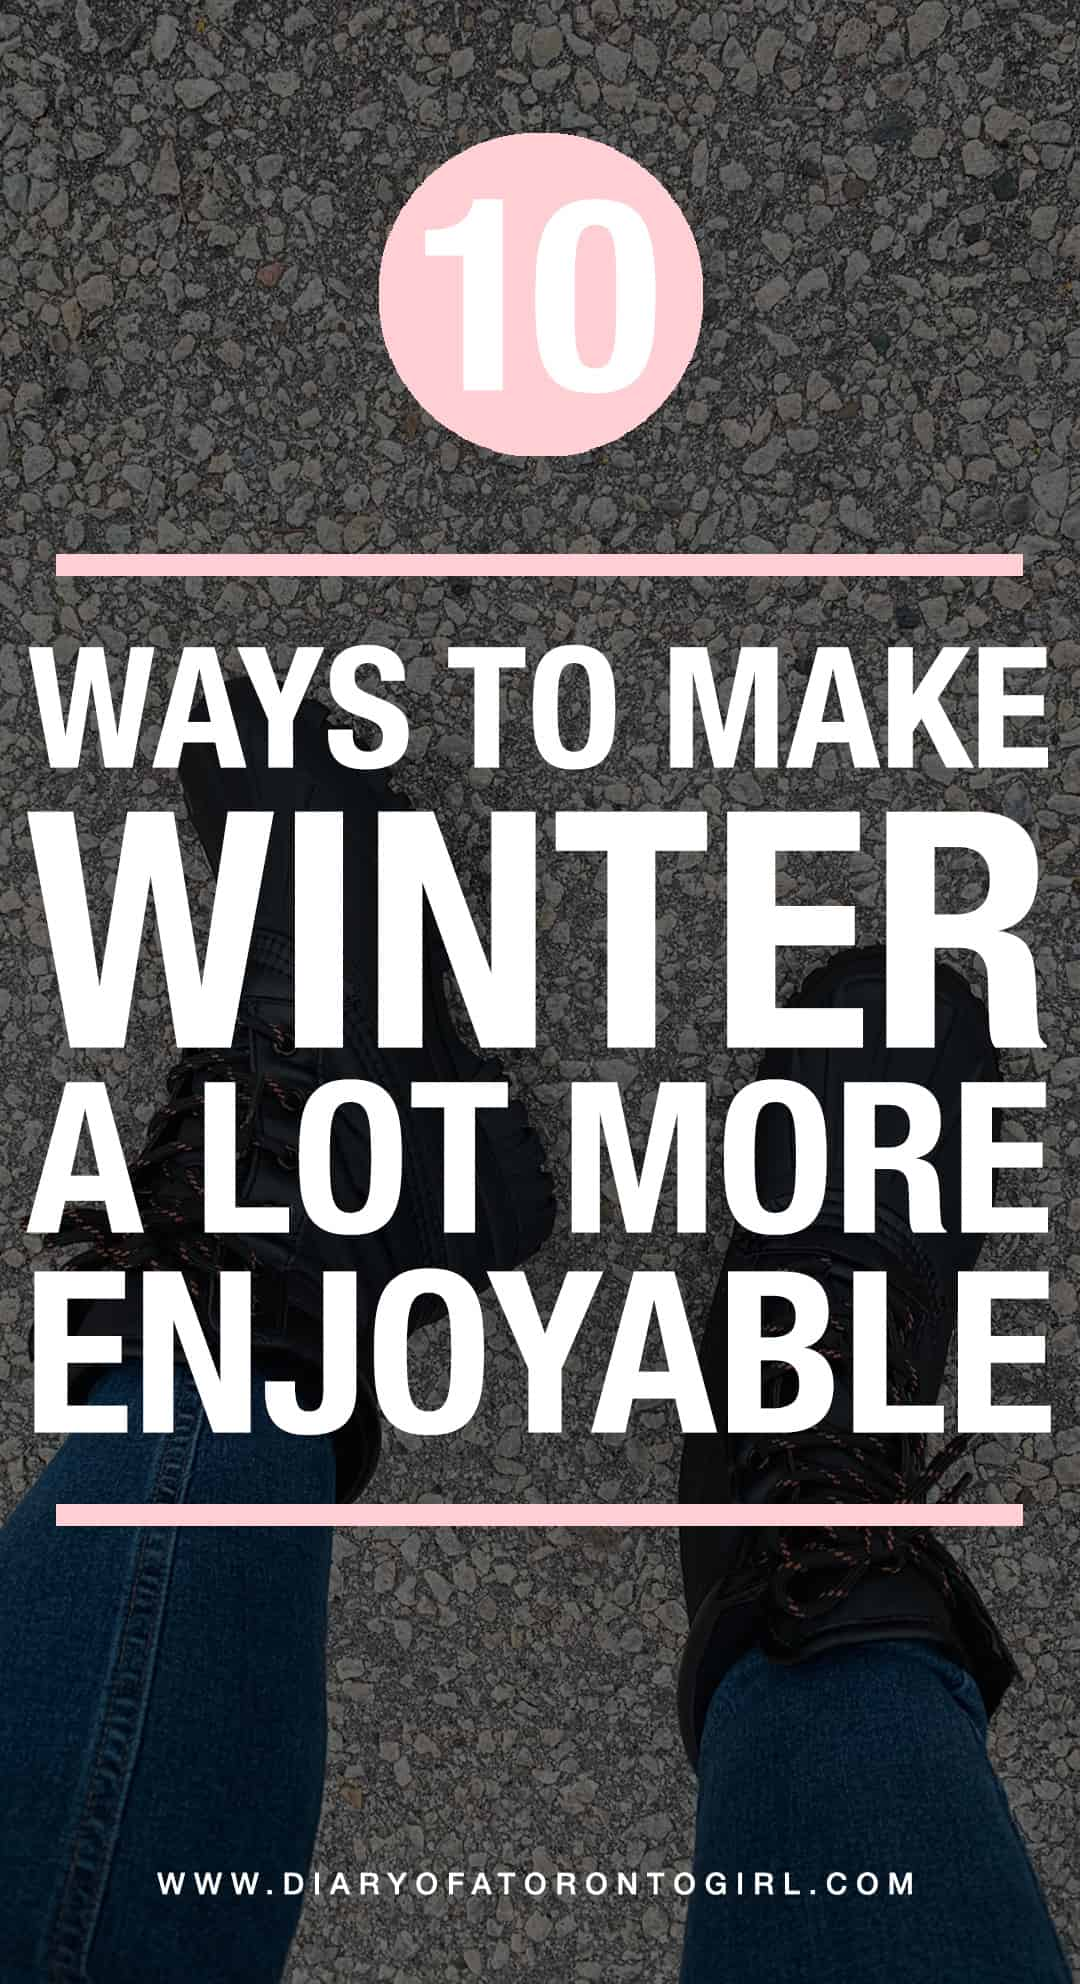 How to make winter more enjoyable (or at least bearable), so you can spend less time hating the cold weather and more time doing fun wintery stuff.